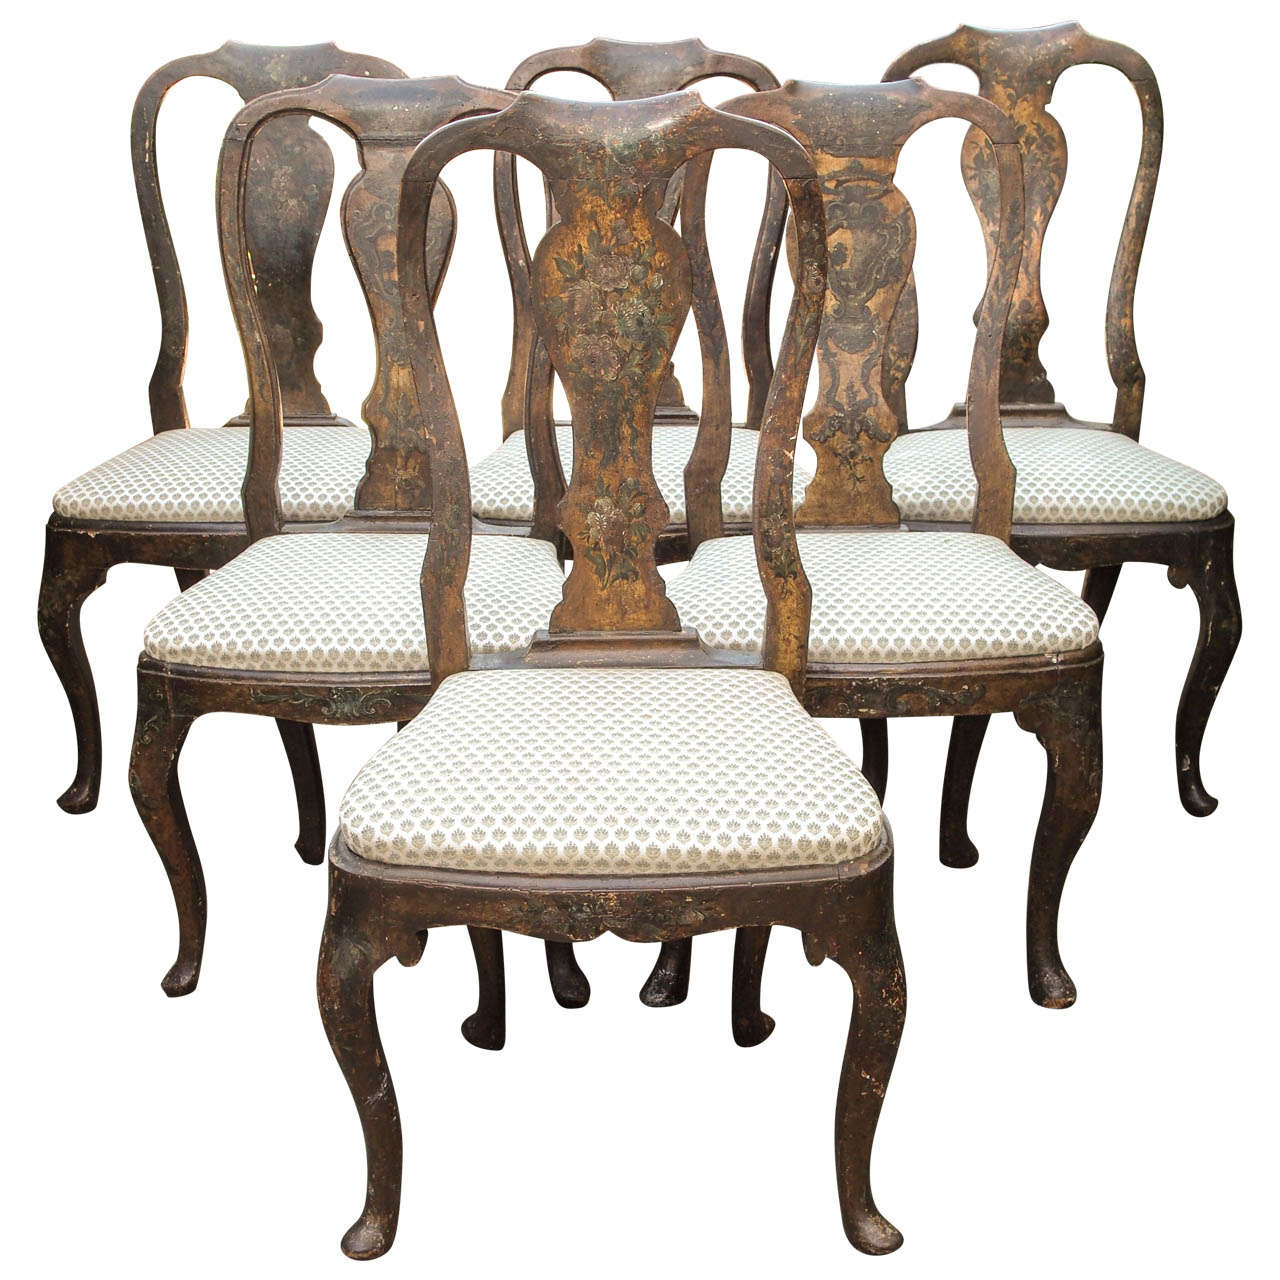 Hand Chairs Set Of Six 18th Century Hand Painted Italian Lucca Vase